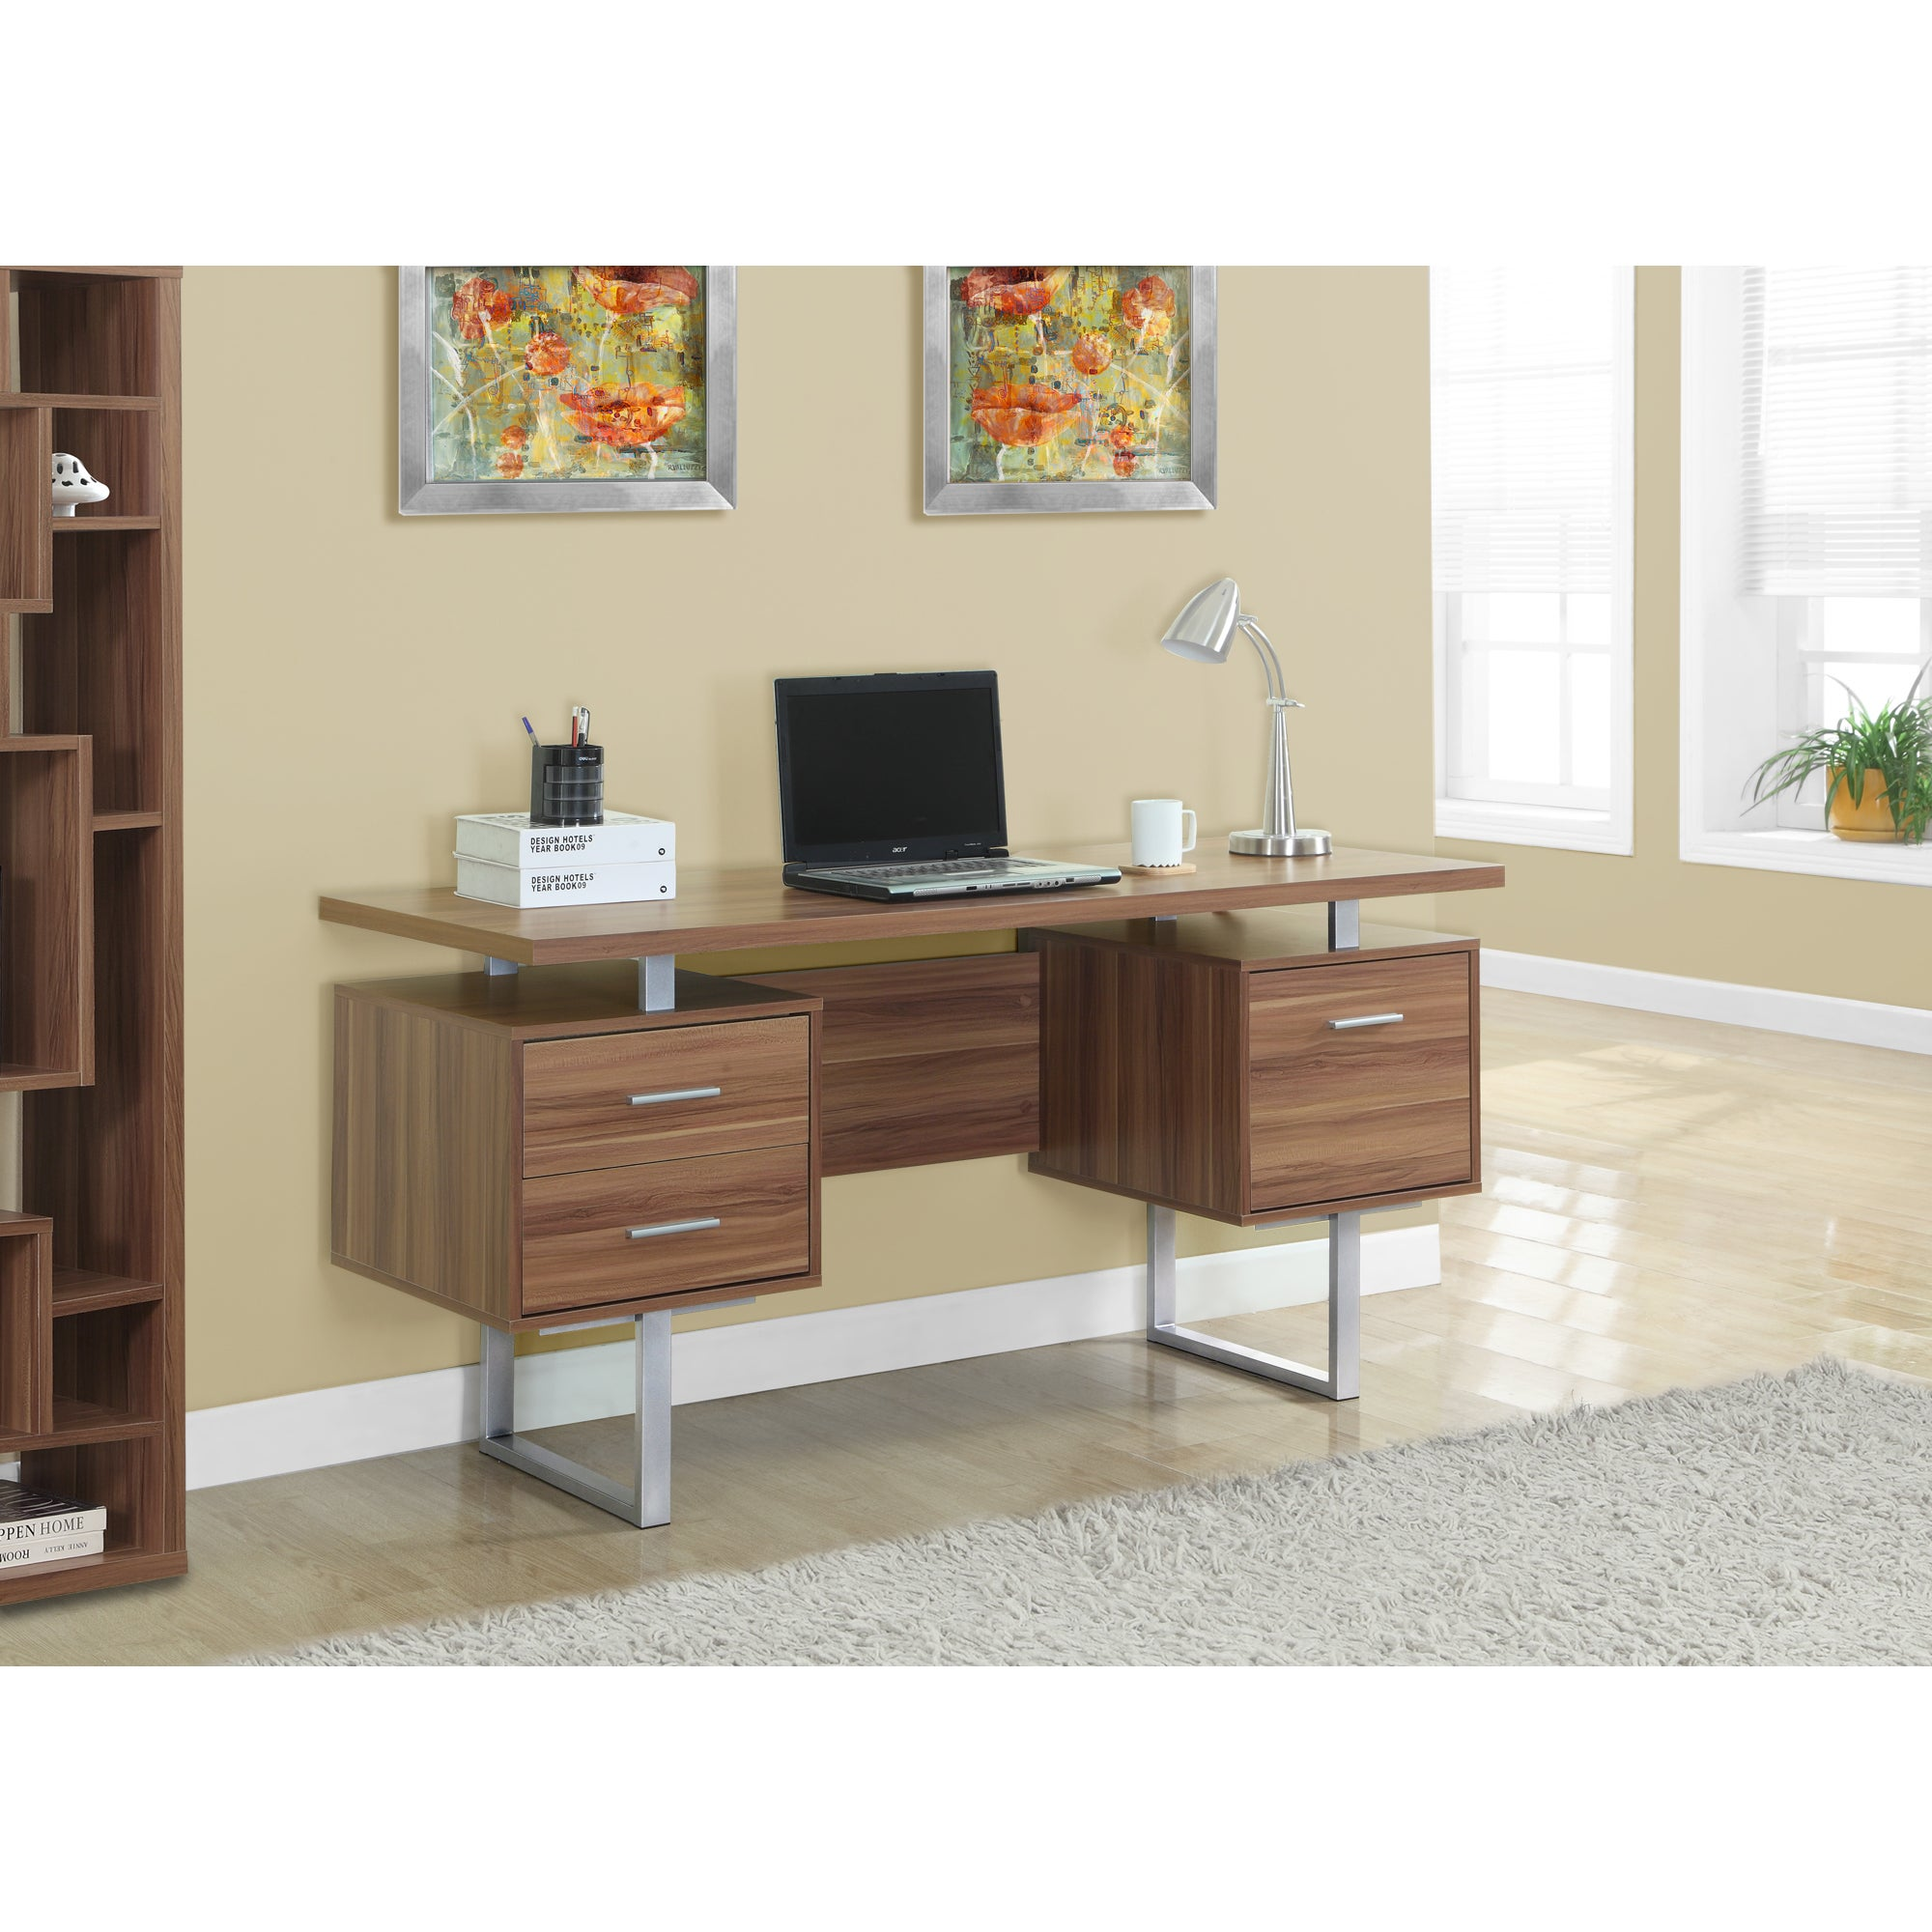 Shop walnut hollow core silver metal 60 inch office desk free shipping today overstock com 9677936